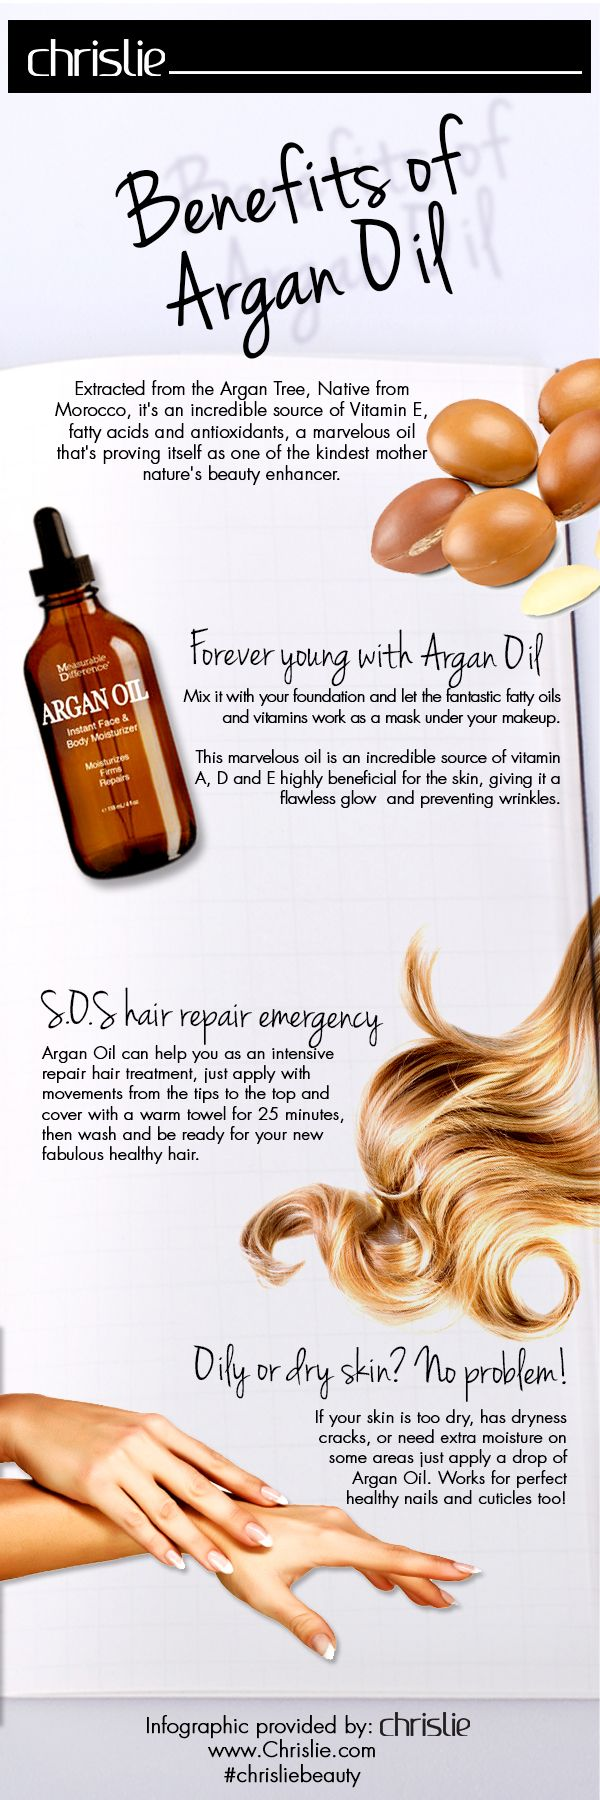 """Famous as nature's form of """"Liquid Gold"""", Measurable Difference Argan Oil is all your skin will ever need. It repairs your oily and dry skin and makes it look healthier and glowy. It's non allergenic and suits every skin type. It's an all rounder, when you mix it with foundation, it will work as a vitamin mask for your makeup. A firm massage with this on your hair will give you fabulous healthy hair #beautifulhair #FlawlessSkin #LoveChrislie"""